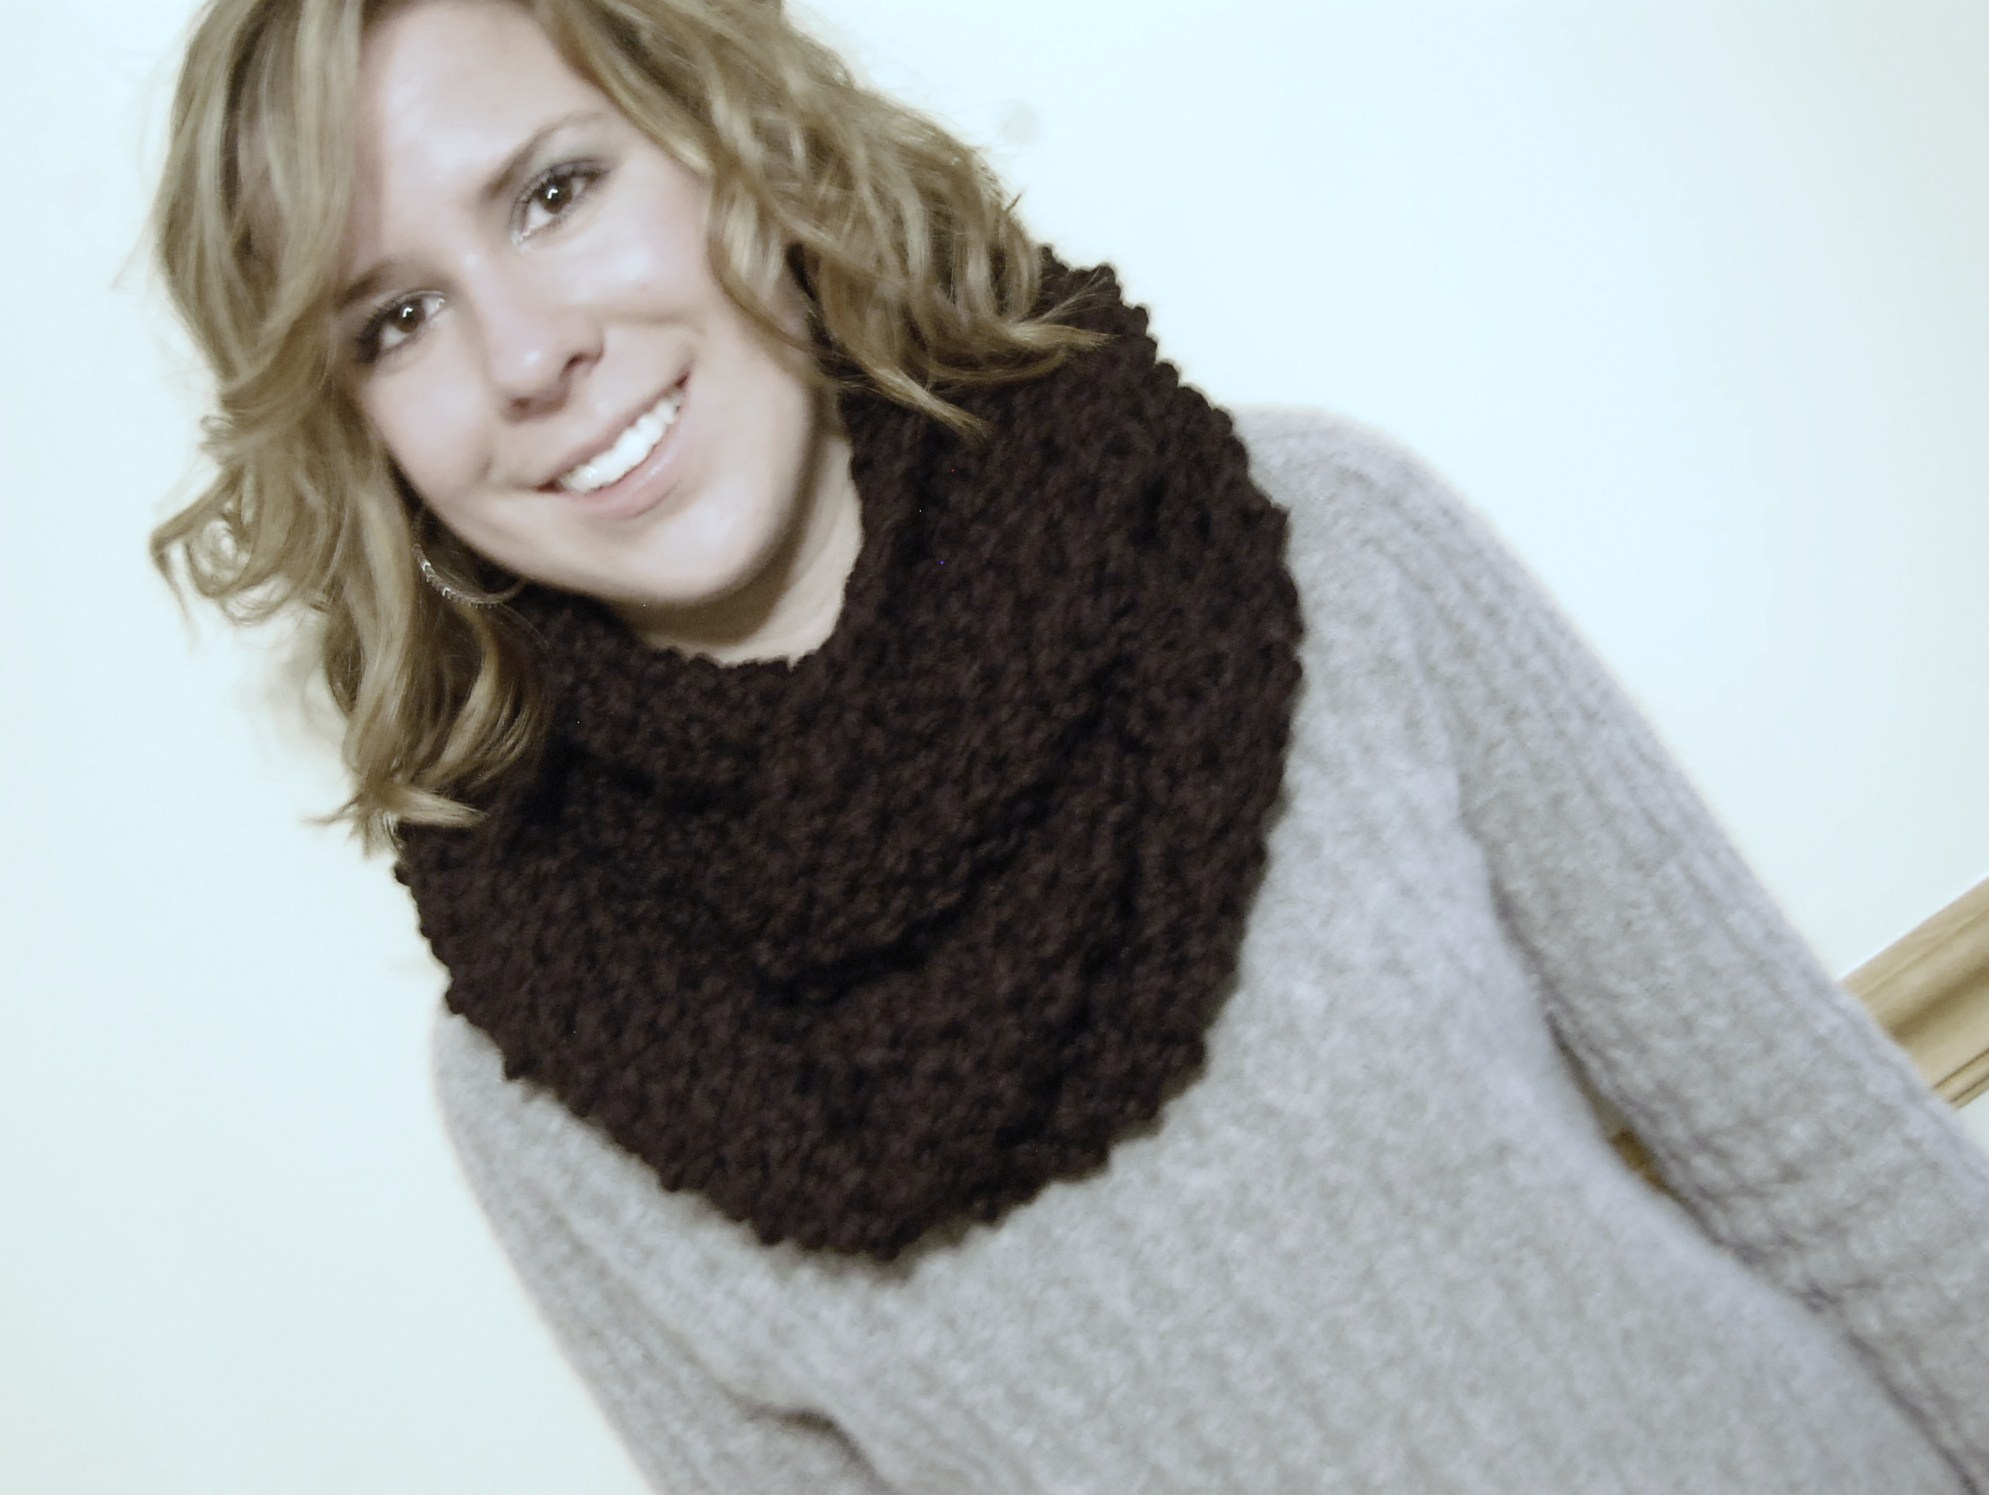 Cardigan Patterns Knitting Free : Free Knit Cowl Pattern - Chunky JJCrochet